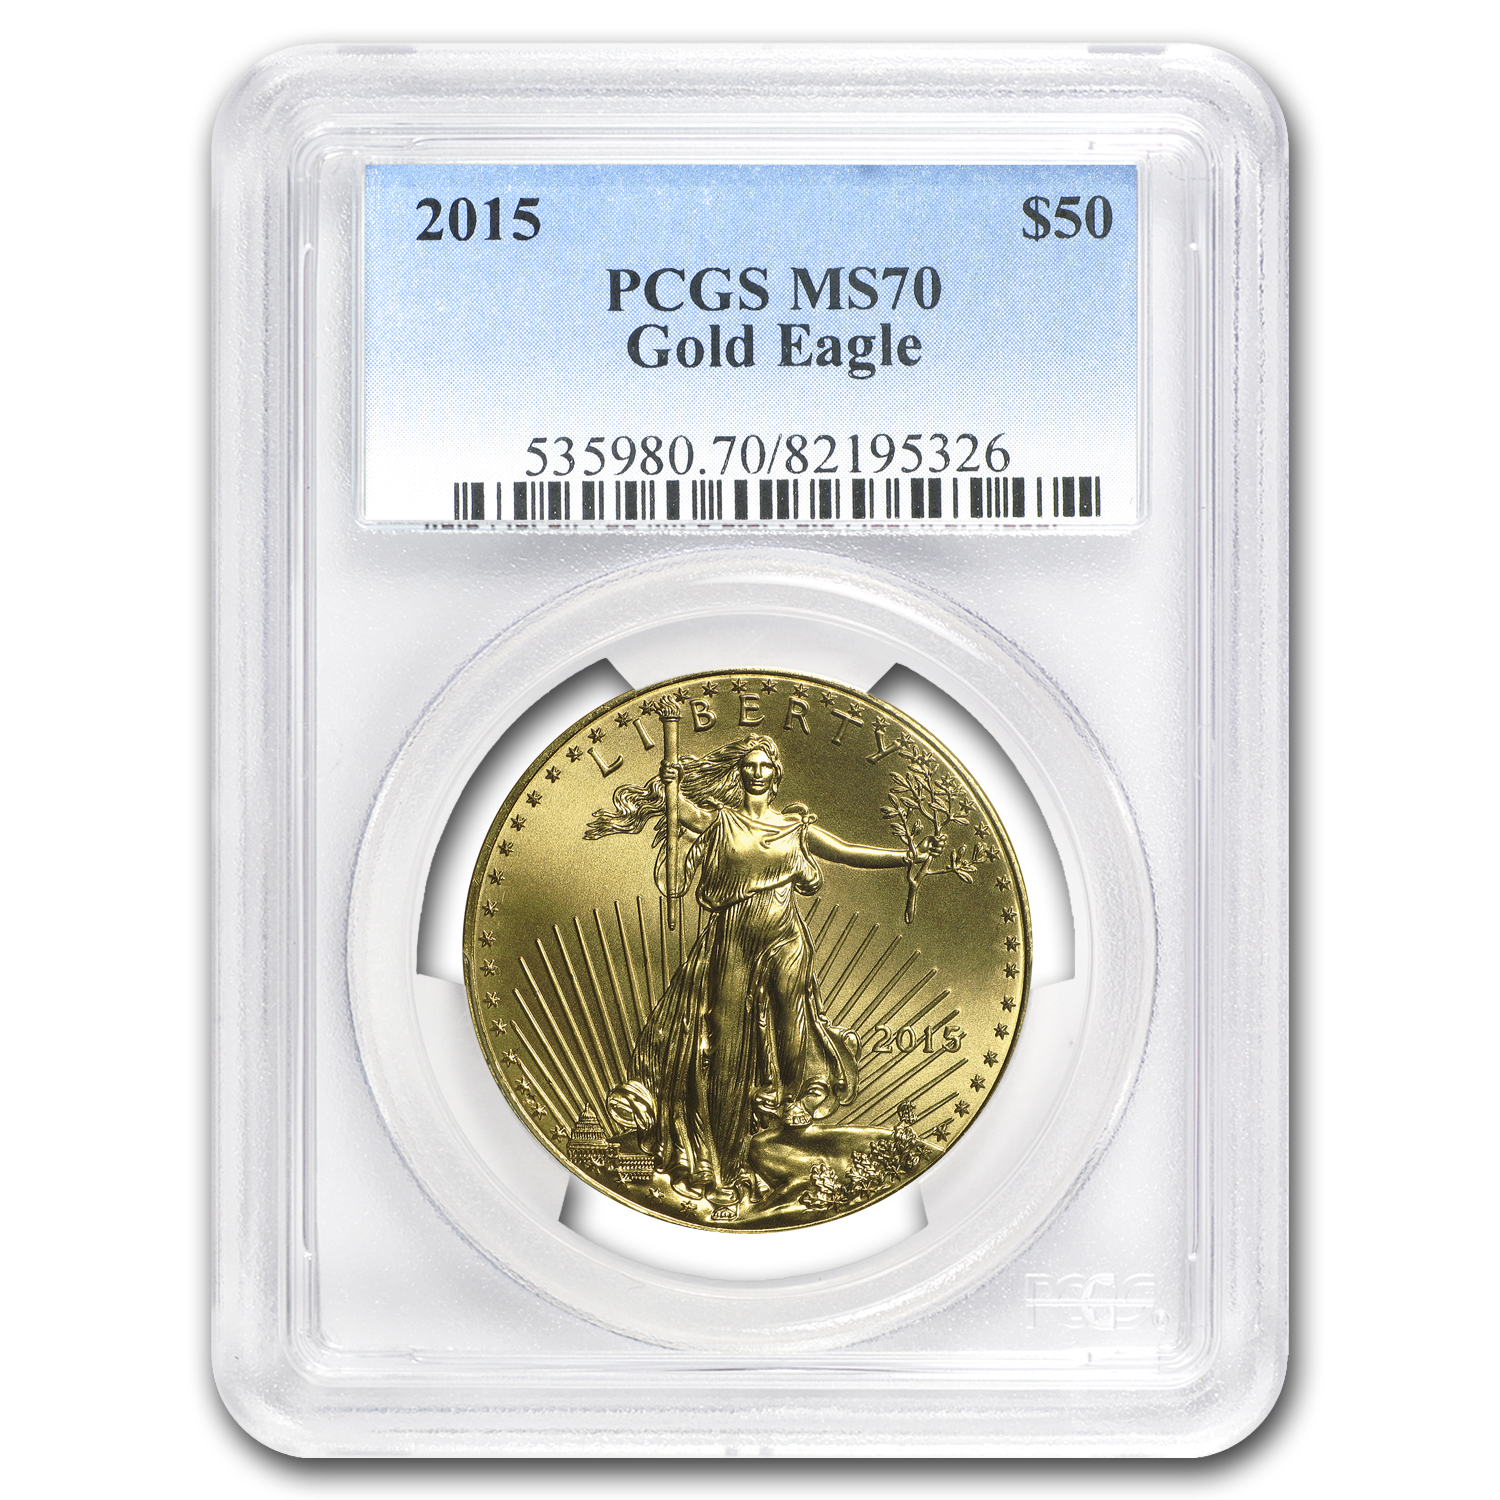 2015 1 oz Gold American Eagle MS-70 PCGS